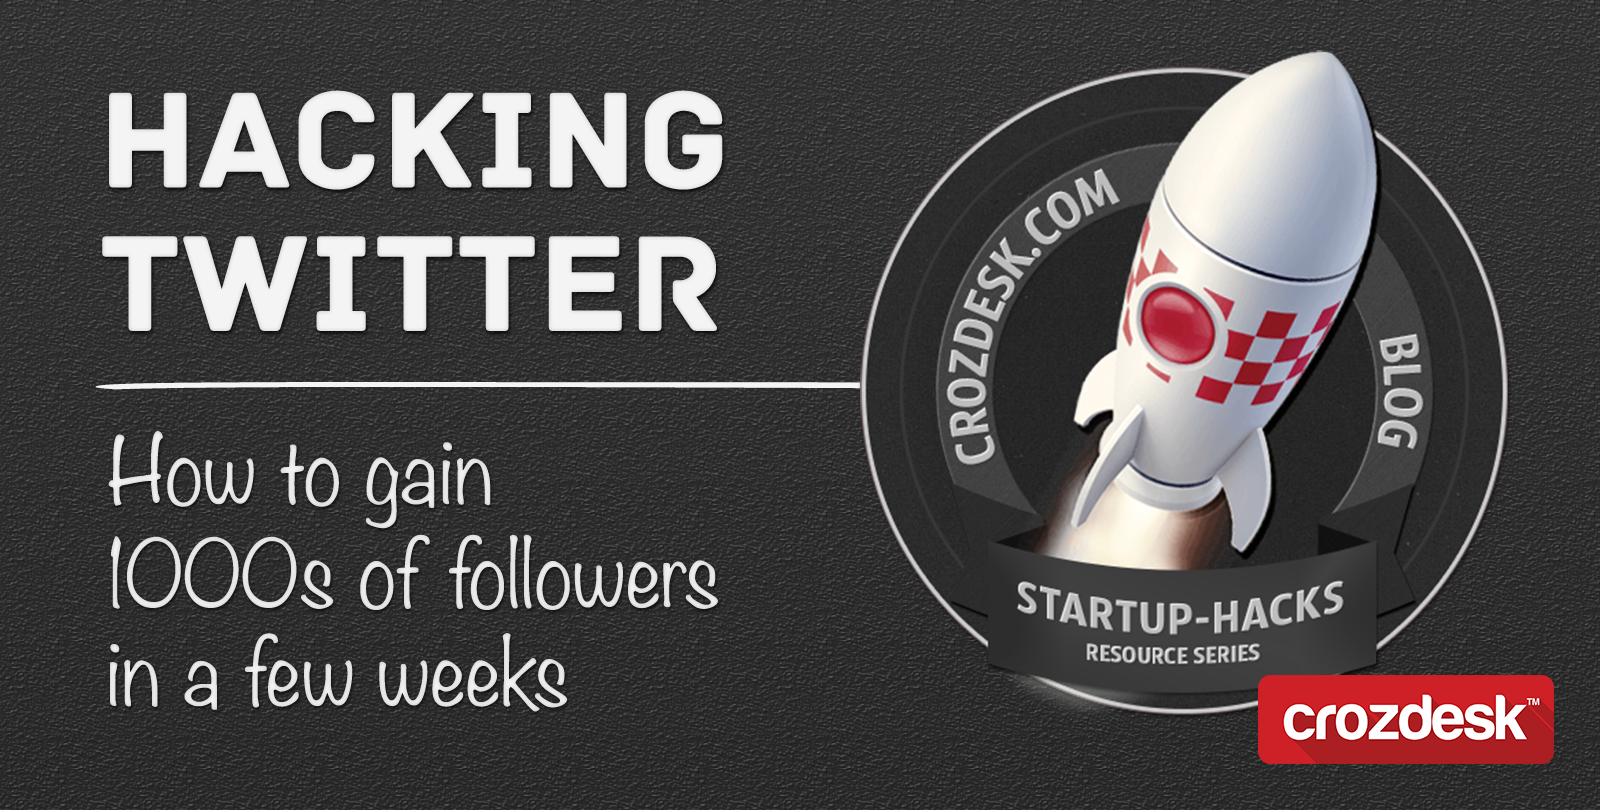 Hacking Twitter – How to gain 1000's of followers in a few weeks